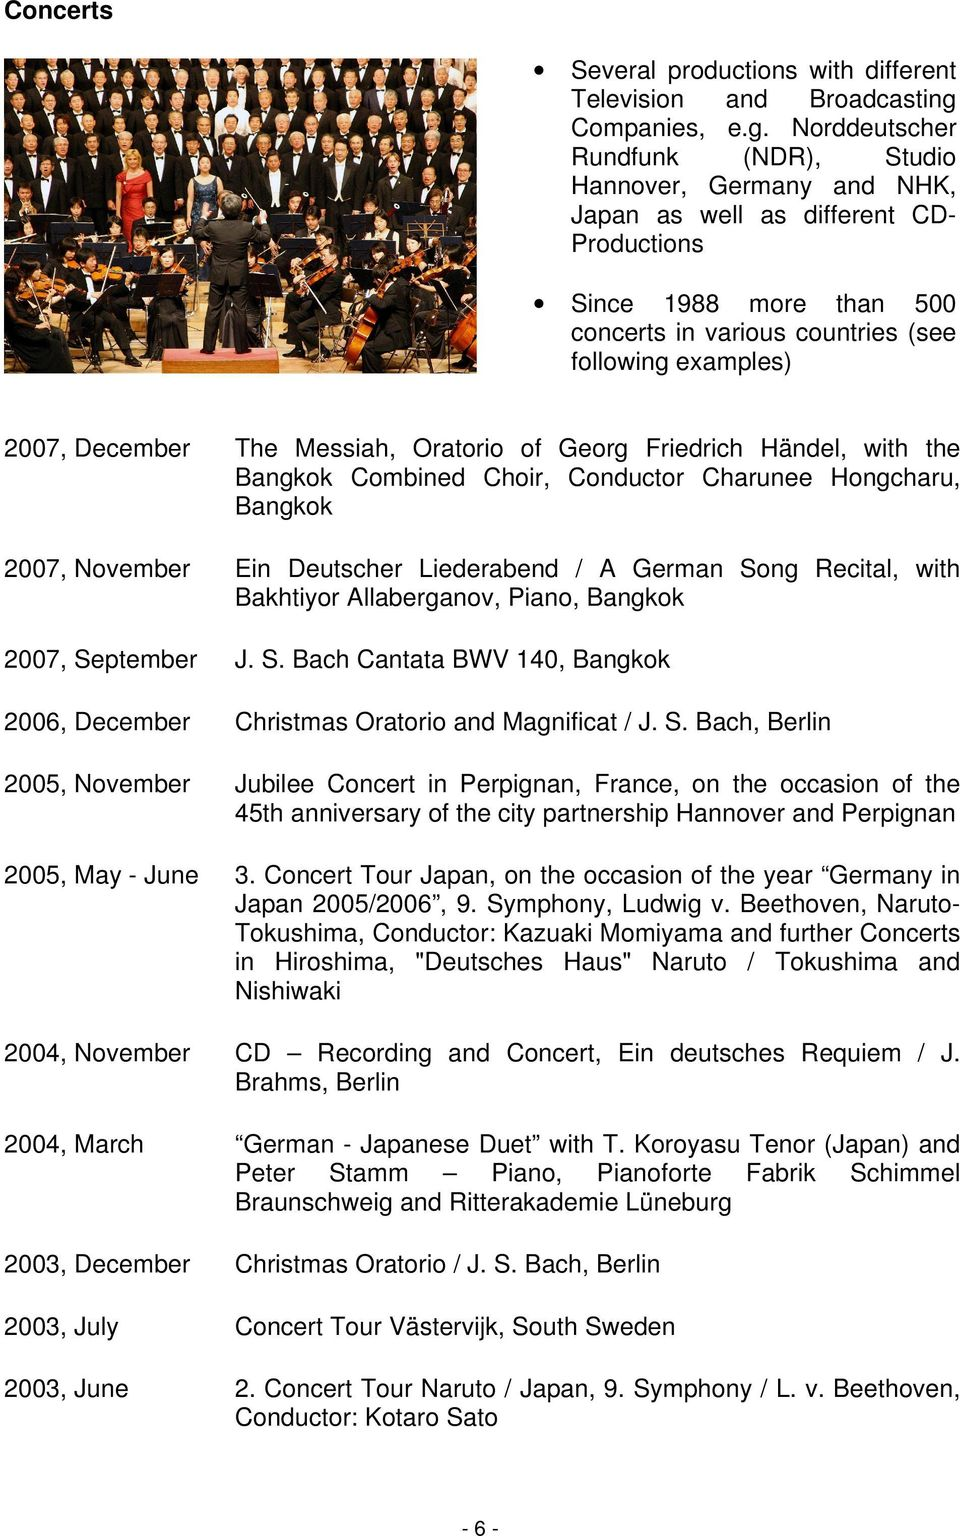 Norddeutscher Rundfunk (NDR), Studio Hannover, Germany and NHK, Japan as well as different CD- Productions Since 1988 more than 500 concerts in various countries (see following examples) 2007,